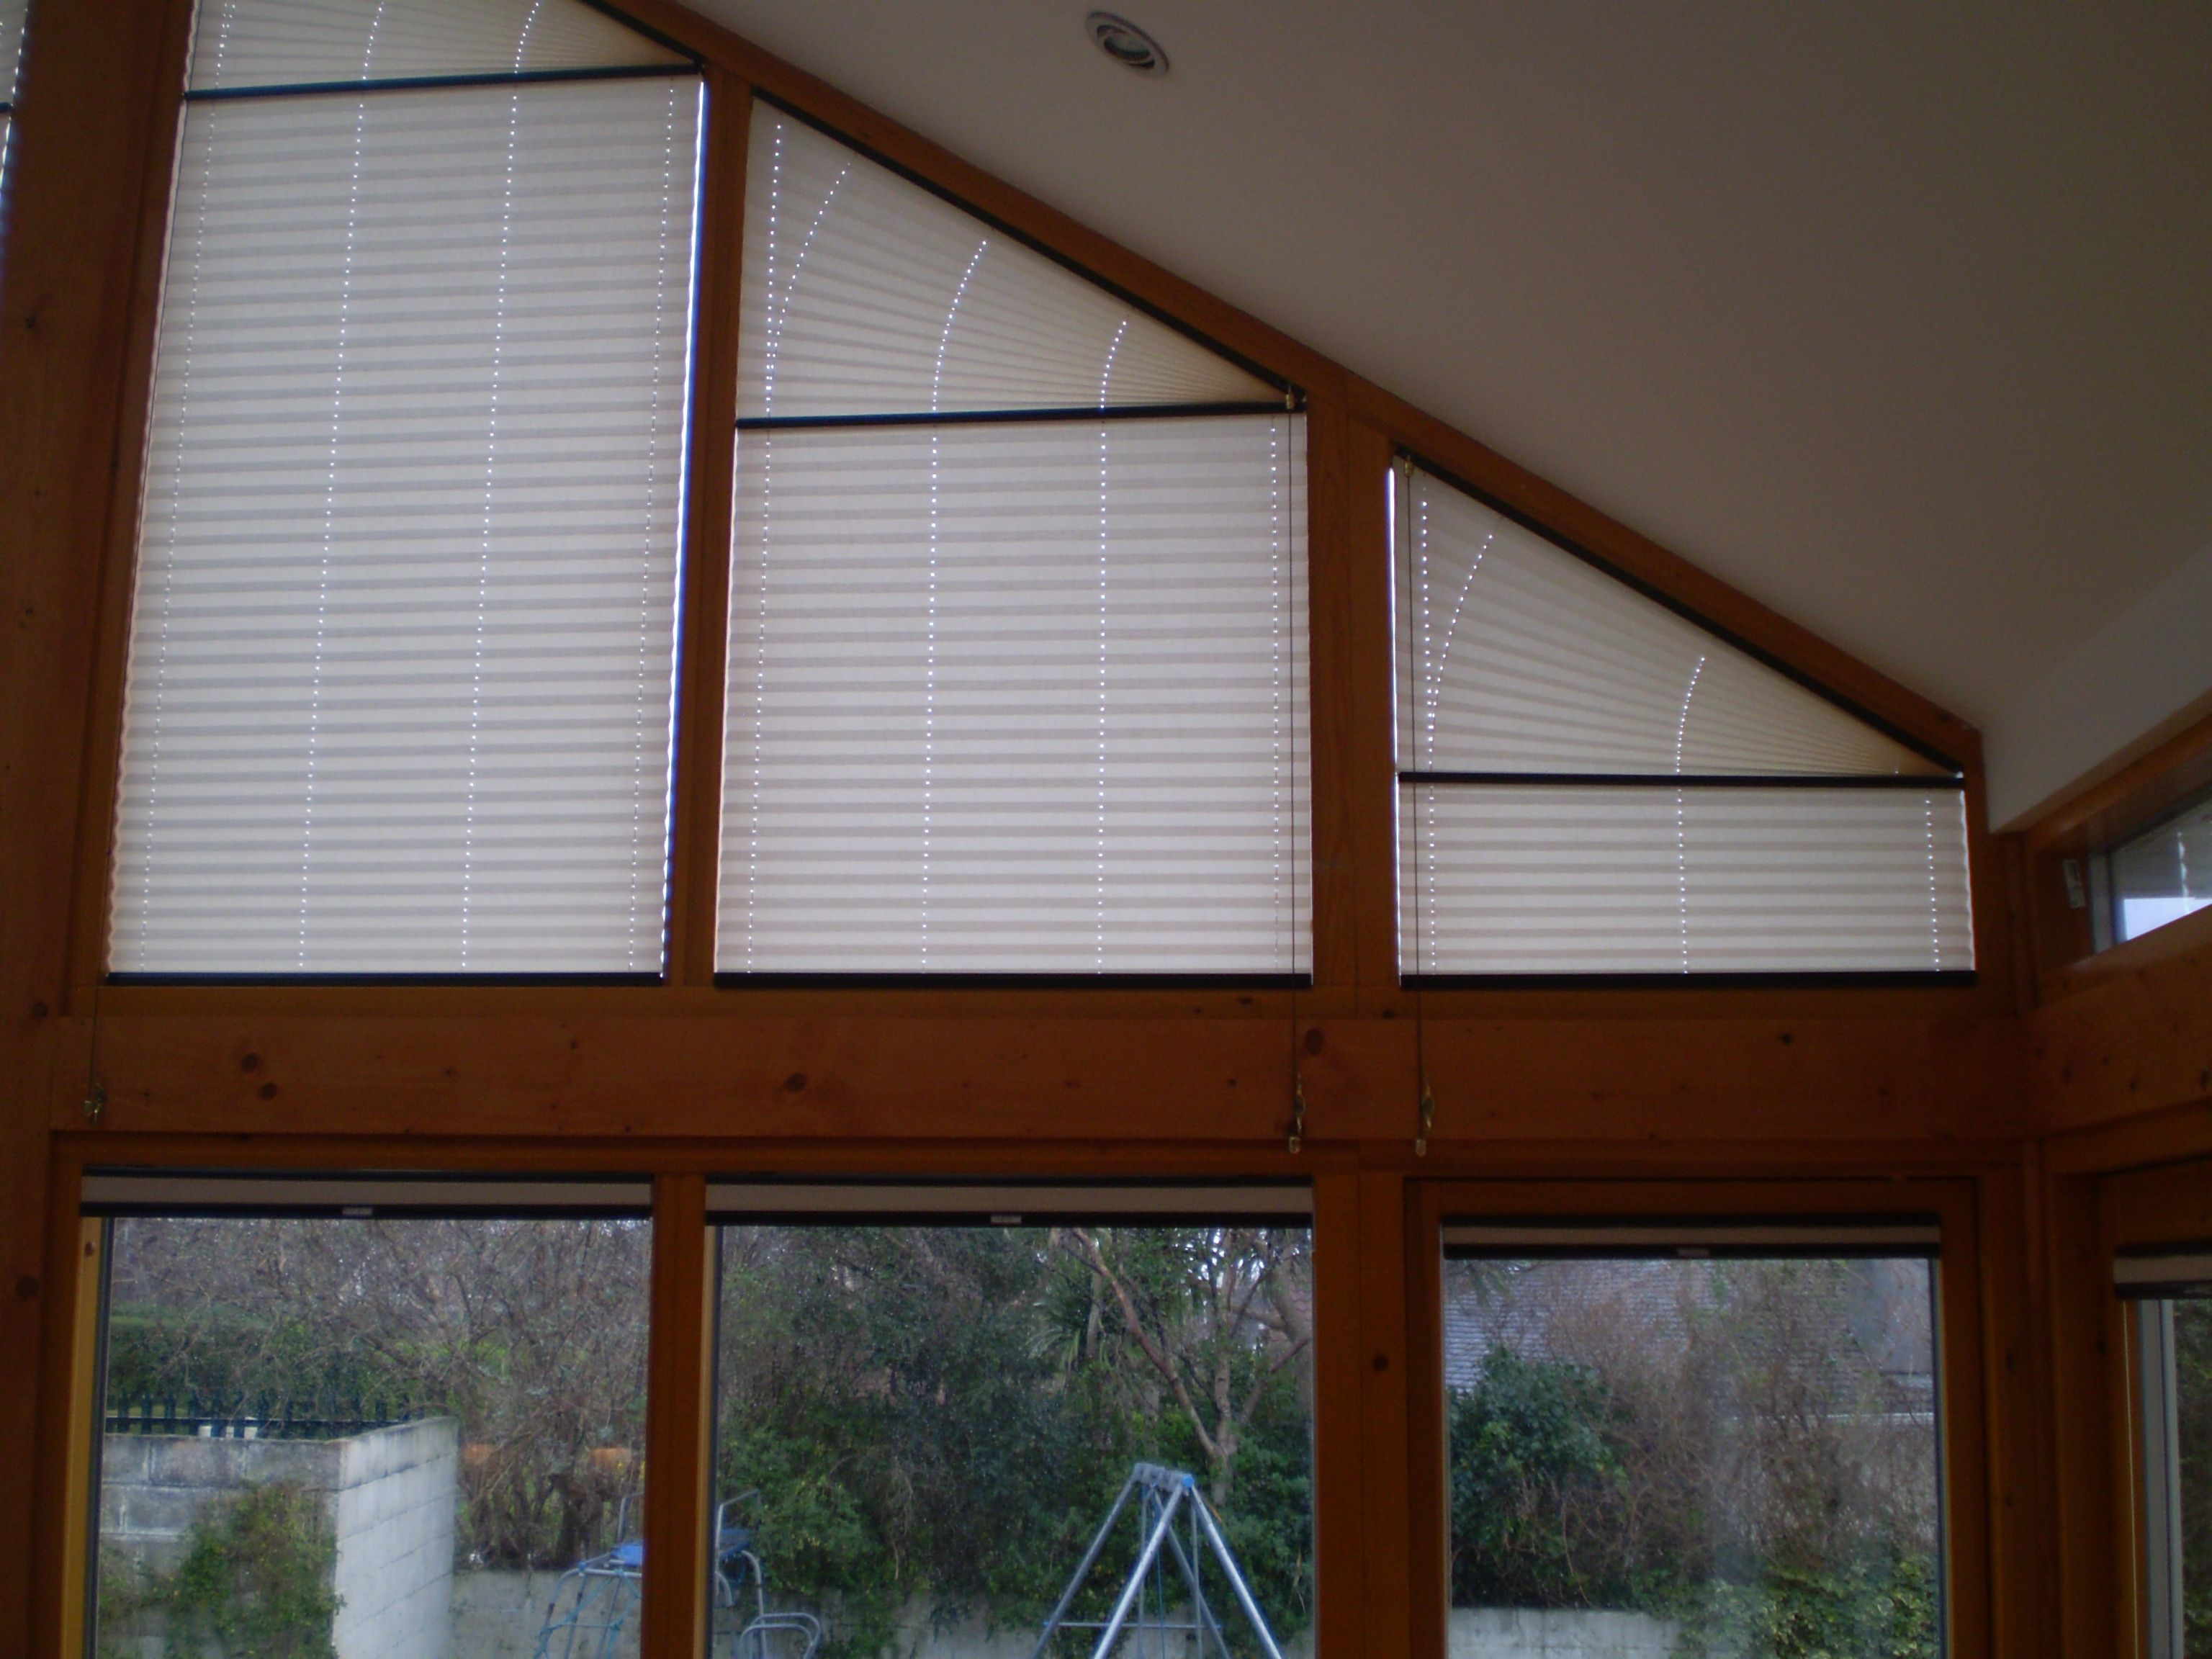 Shaped Pleated Blinds.  http://www.signature.ie/shaped-blinds.html